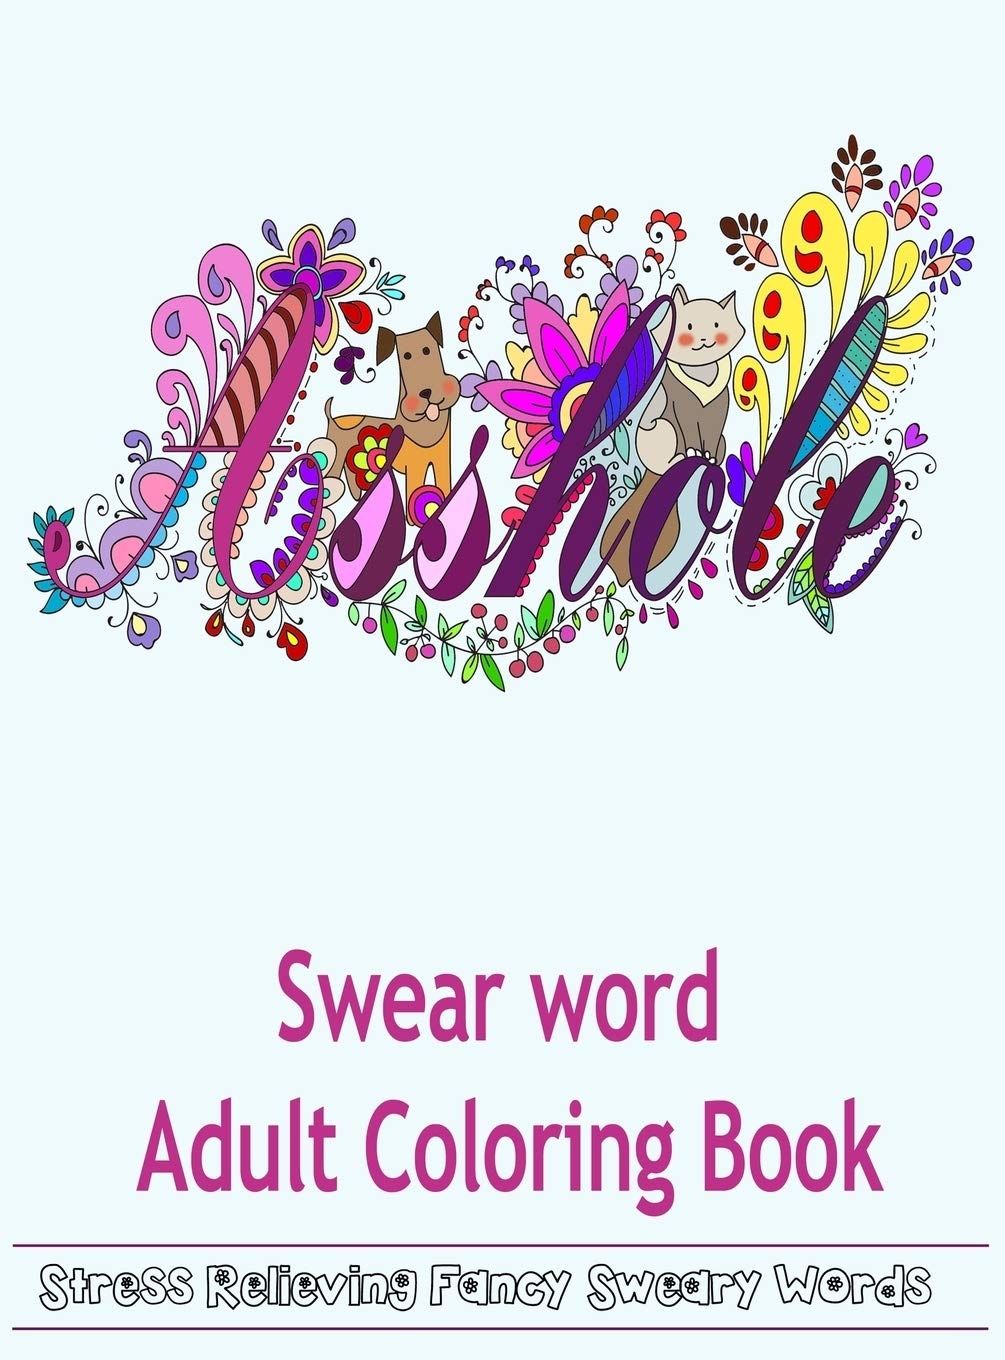 Amazon.com: Swear Word Adult Coloring Book: Hilarious Sweary